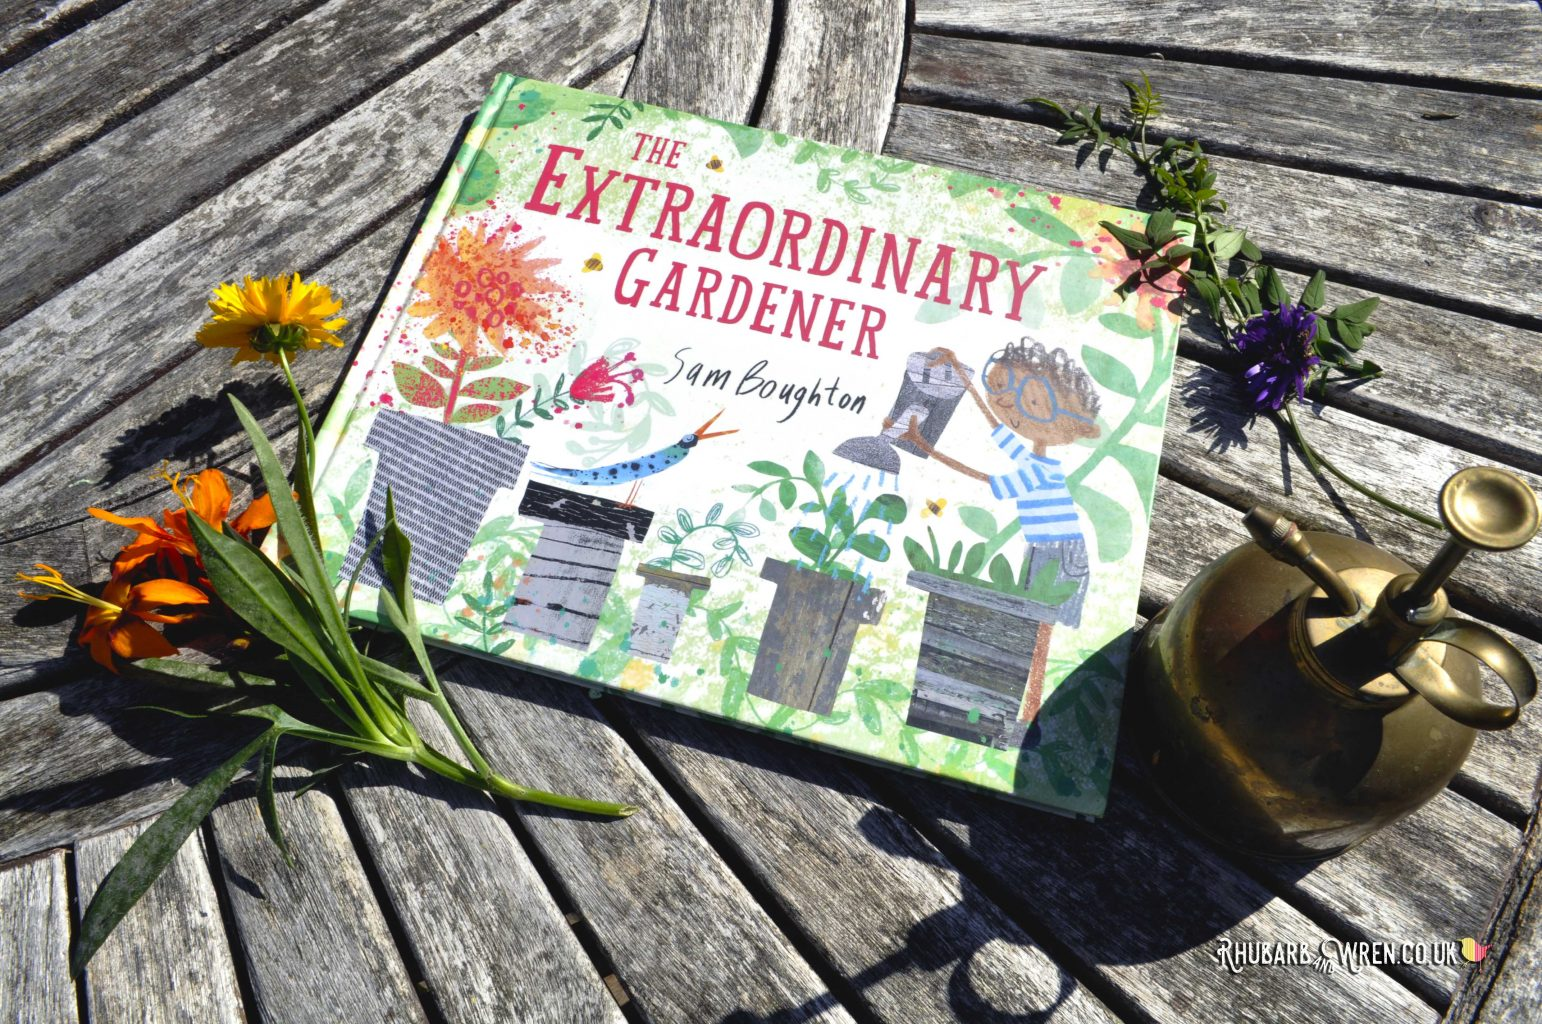 Children's picture book The Extraordinary Gardener by Sam Boughton